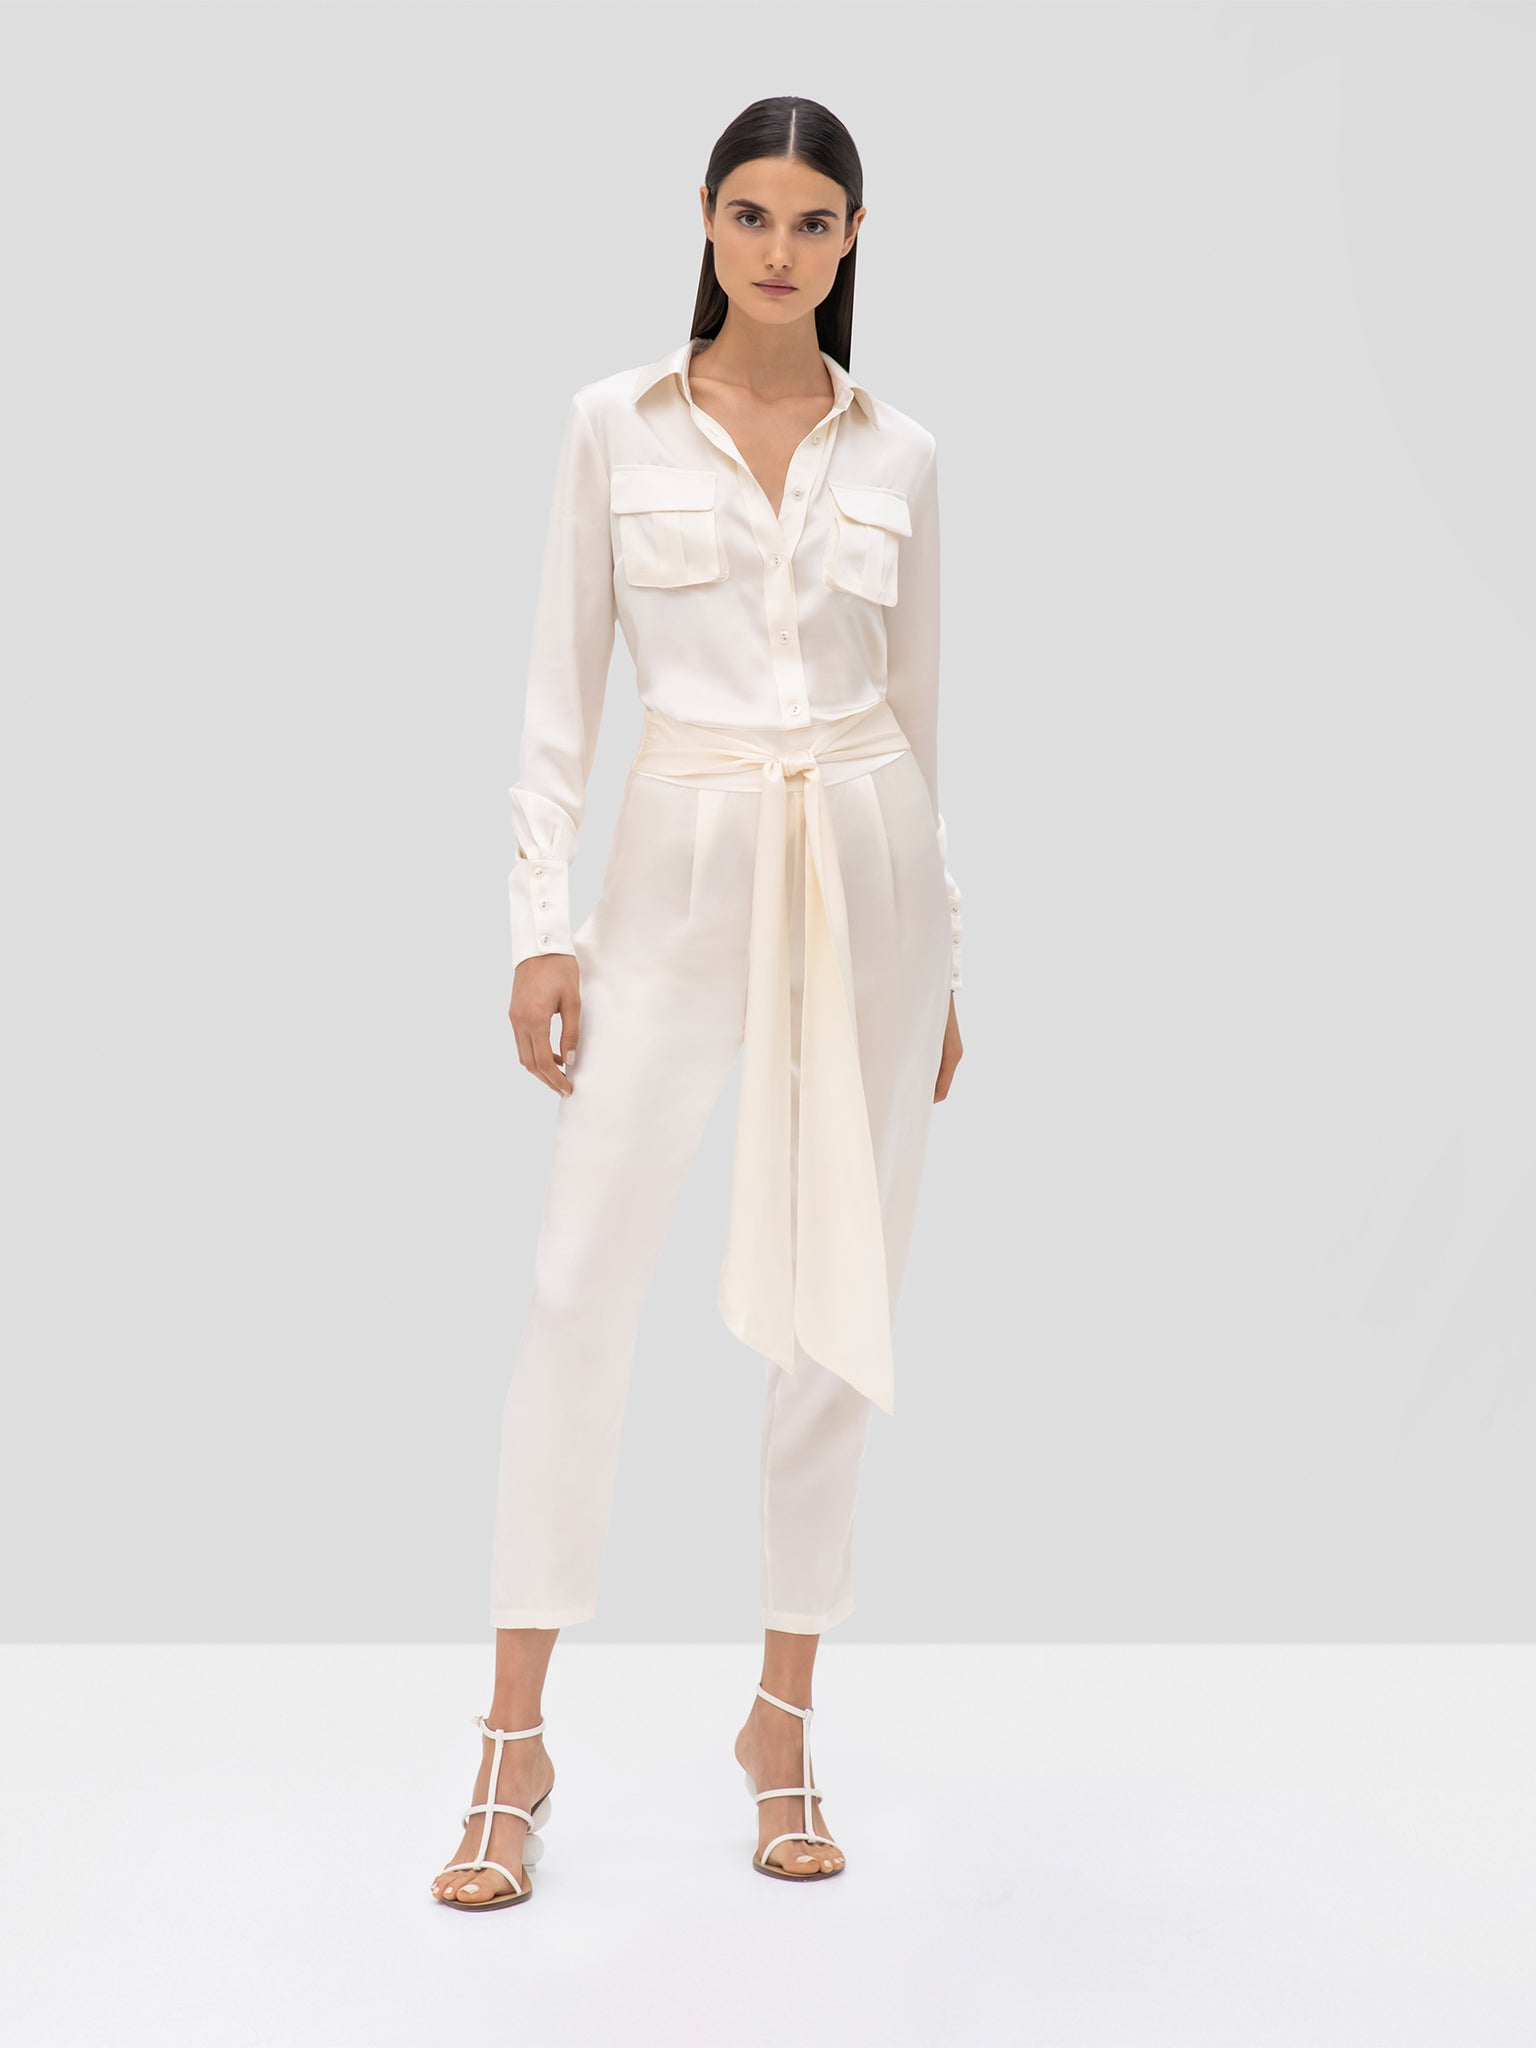 Alexis Montrose Top and Judson Pant in Ivory